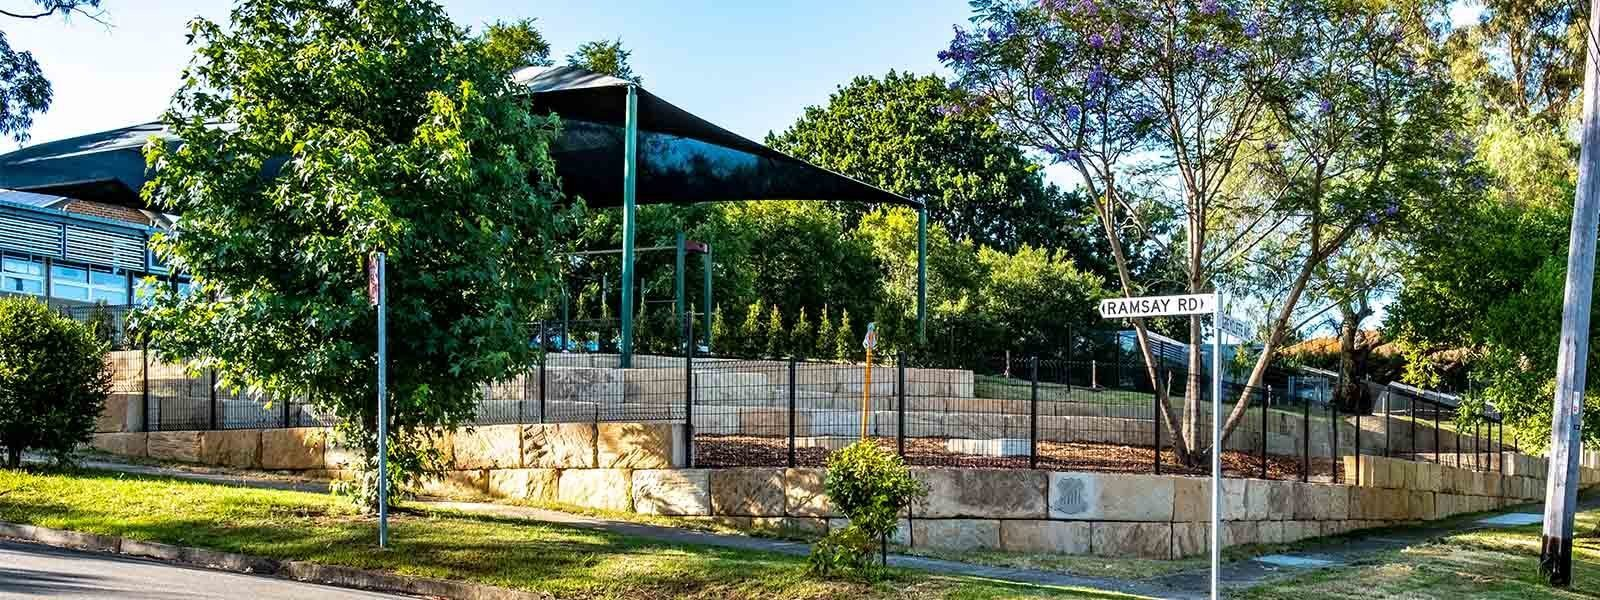 Pennant Hills Public School view from street